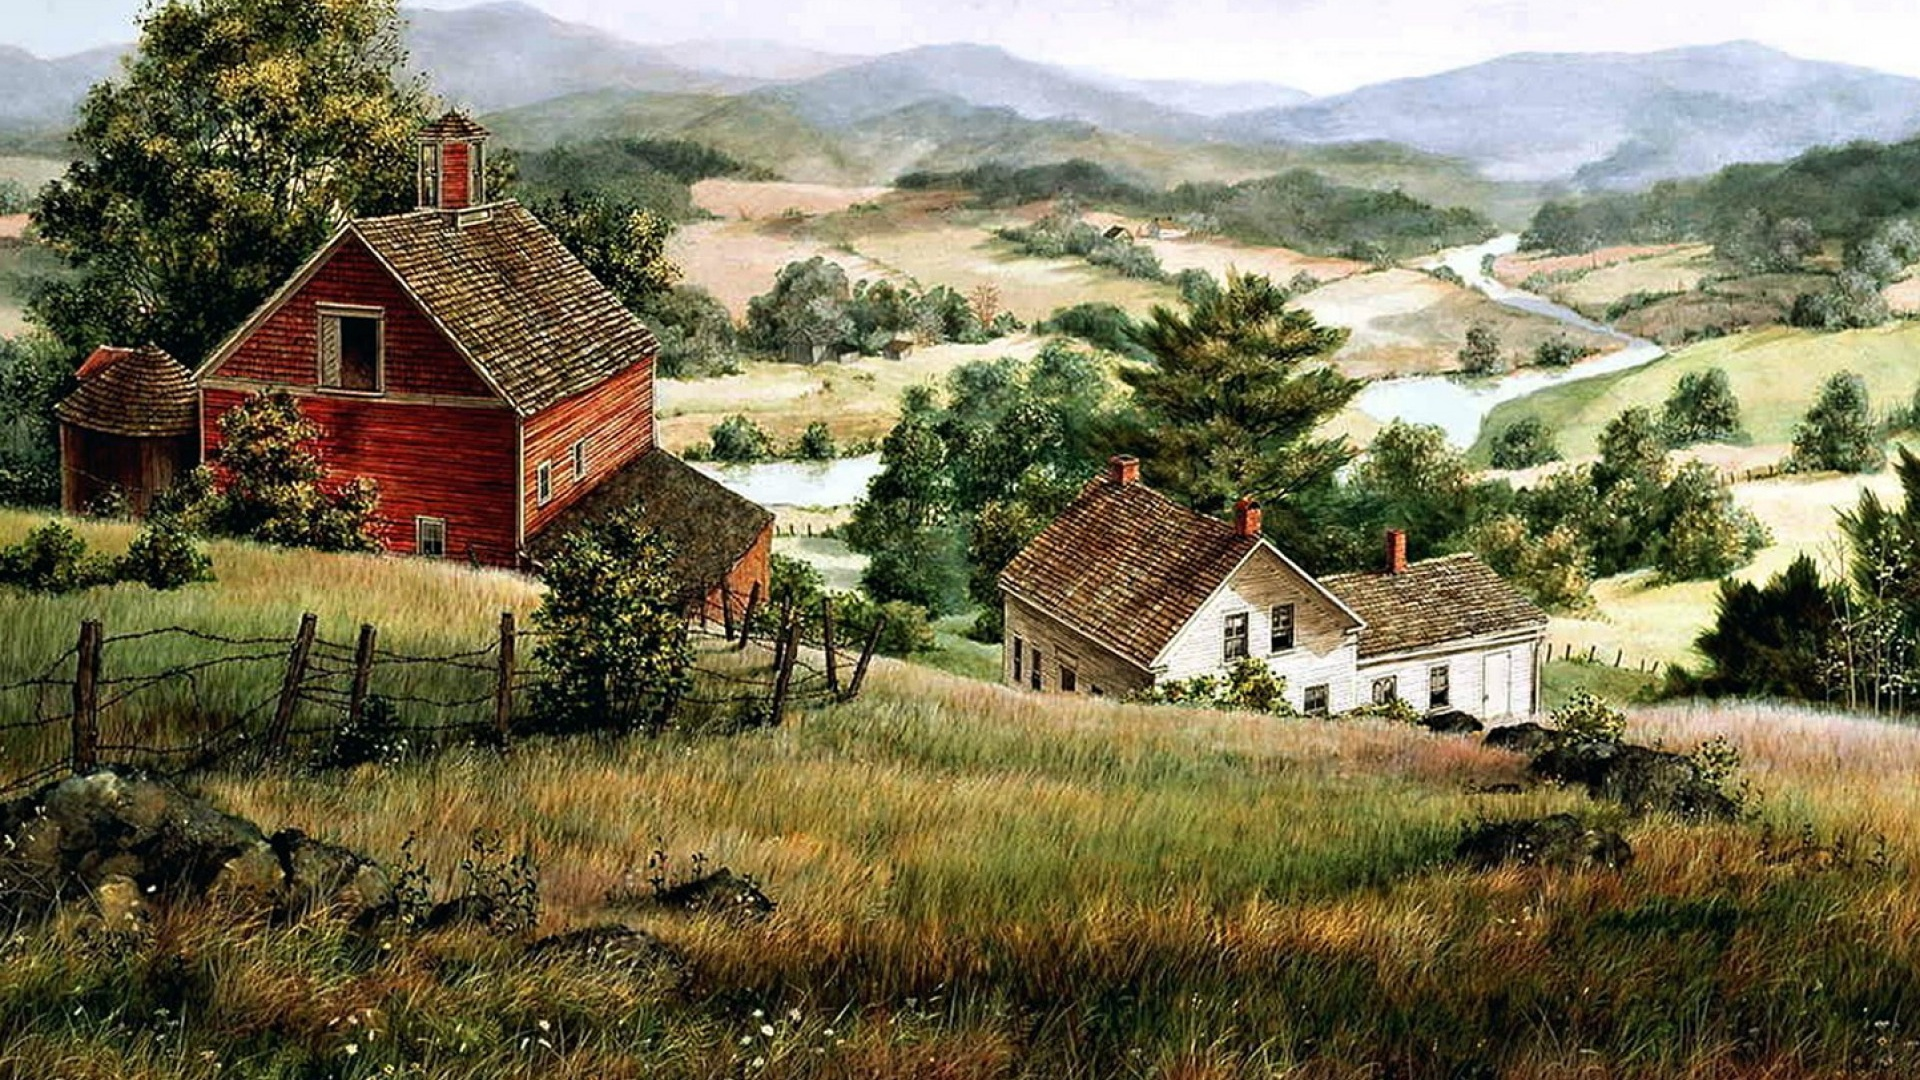 1920x1080 Hills Farm Houses River Valley desktop PC and 1920x1080